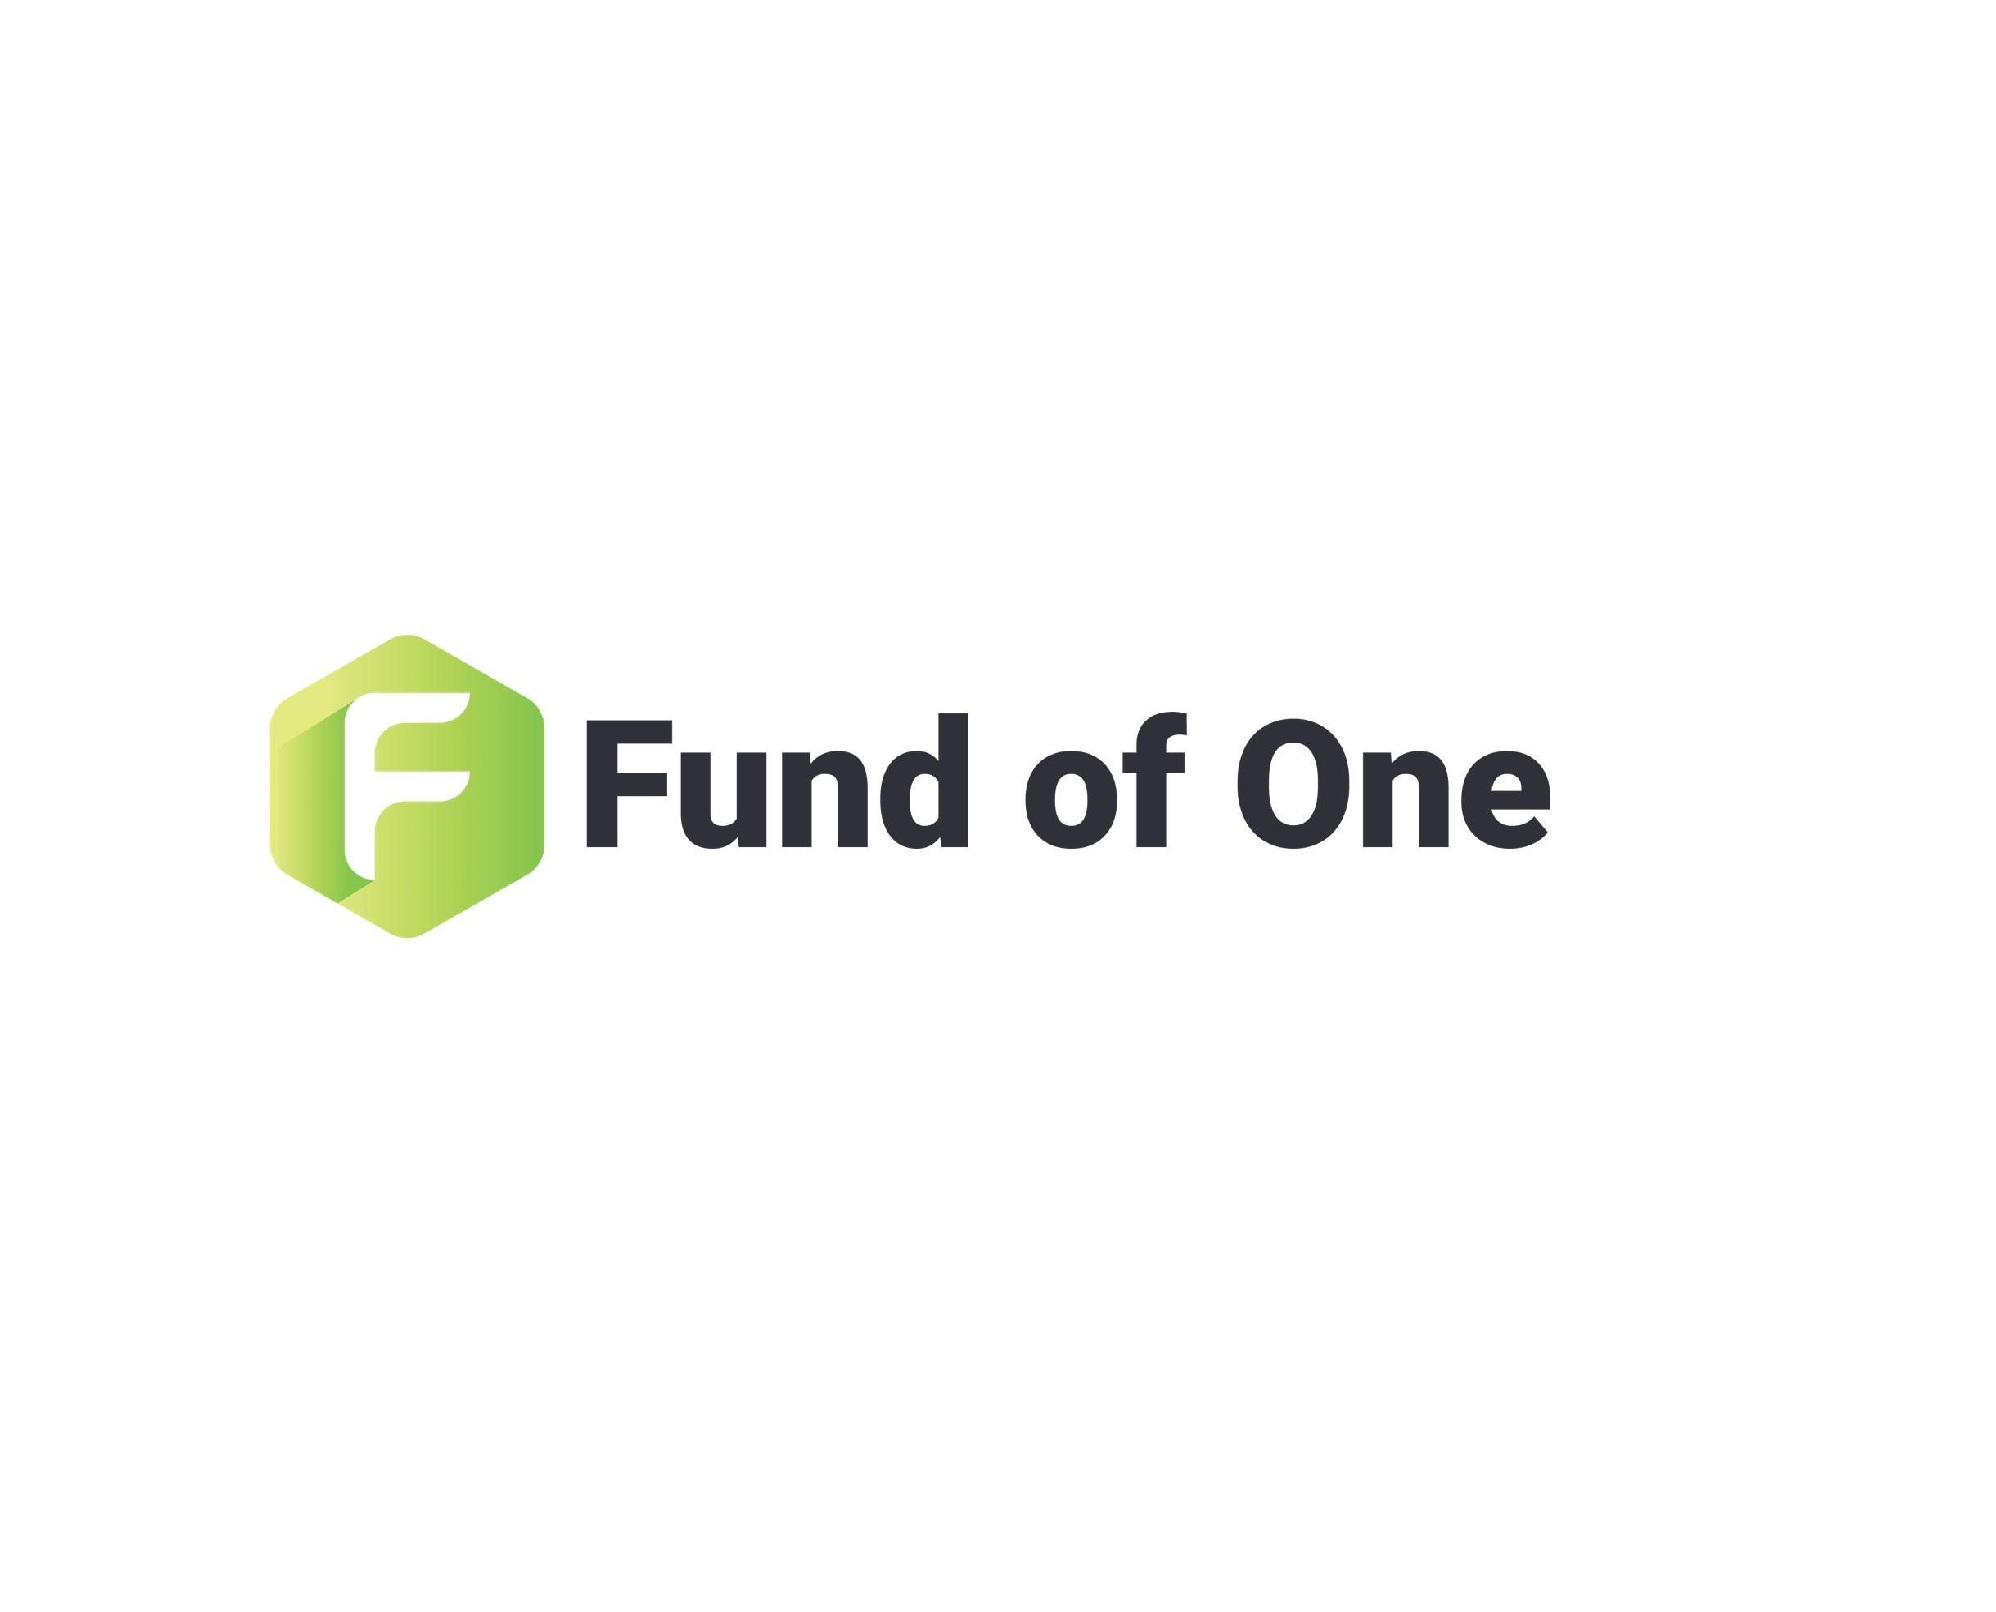 Fund of One Corporation